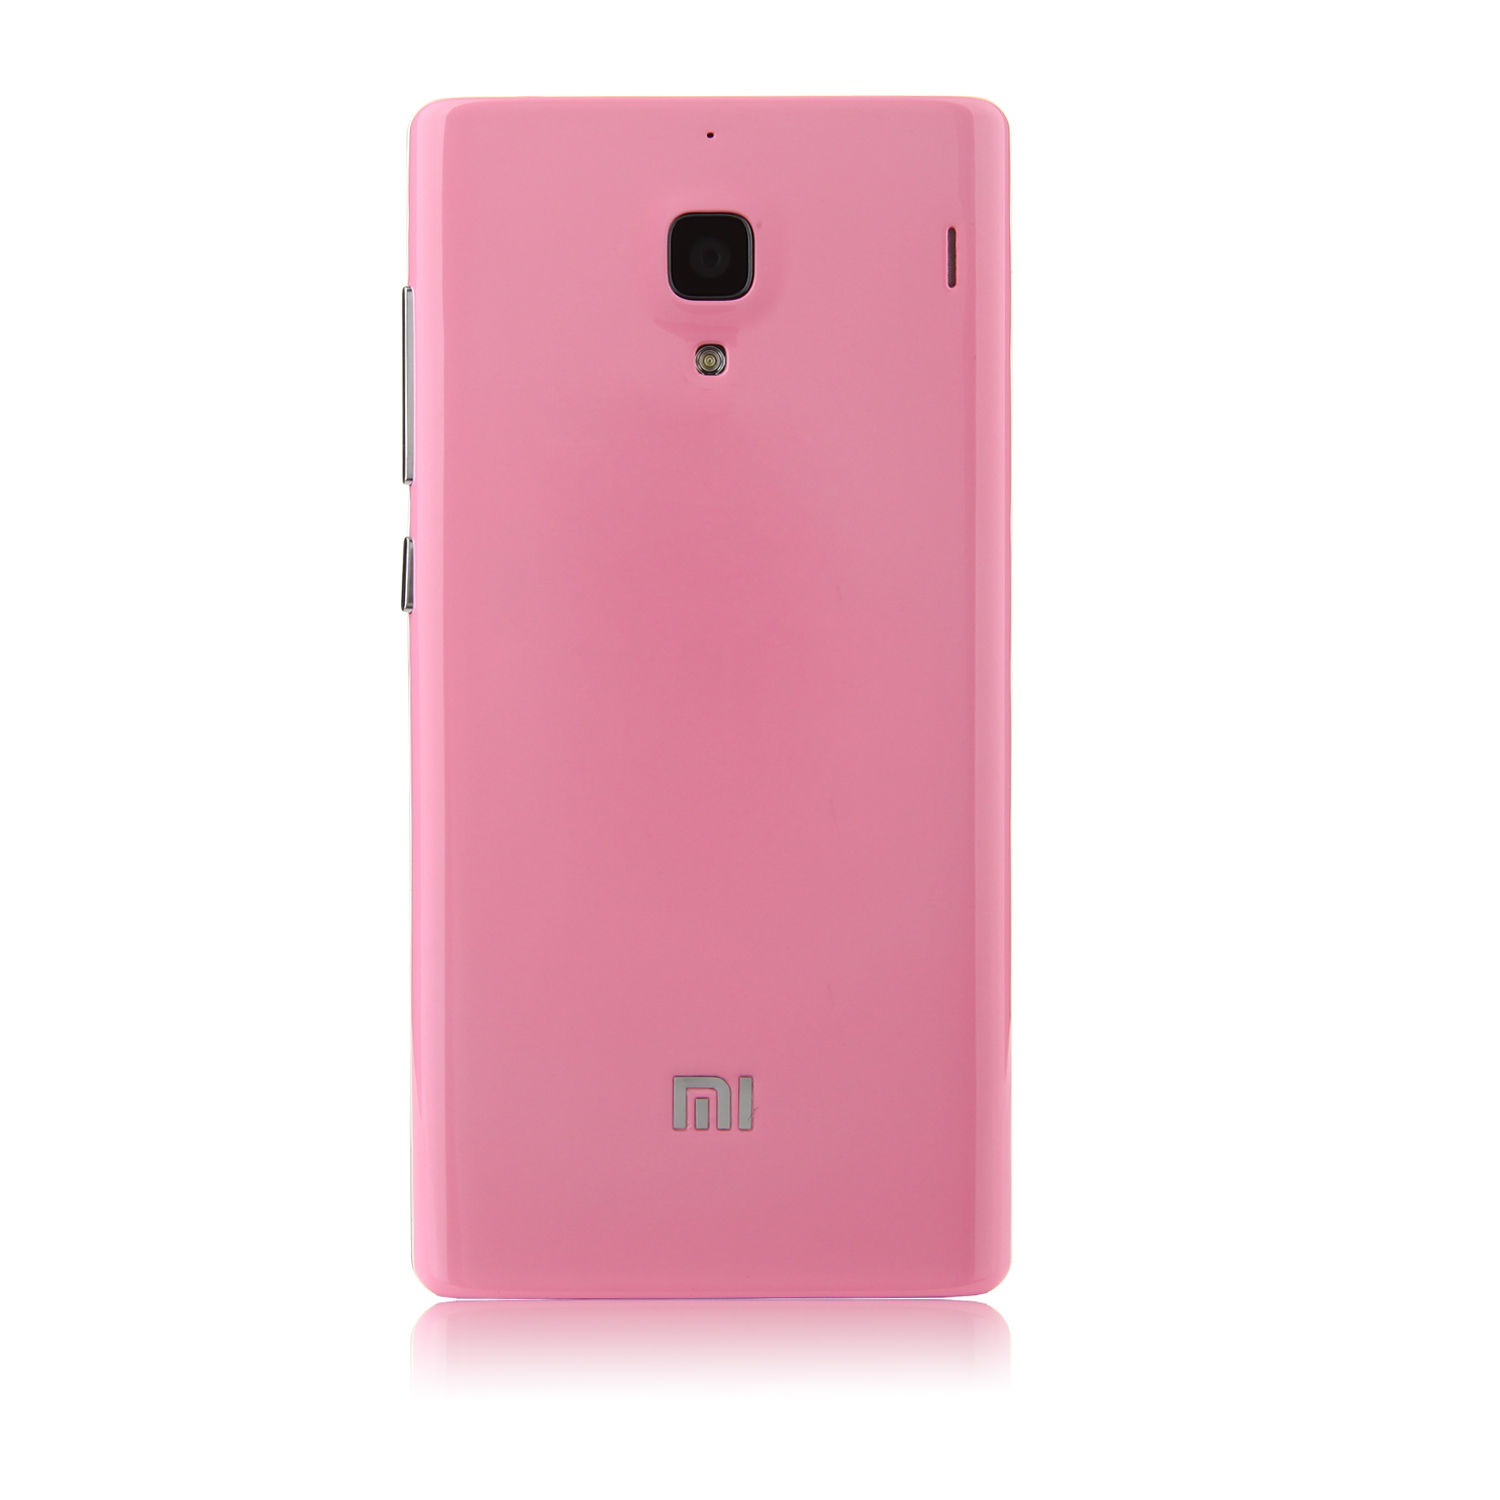 Replacement Battery Cover Back Case For Xiaomi Redmi 1s Grey Smartphone Pink